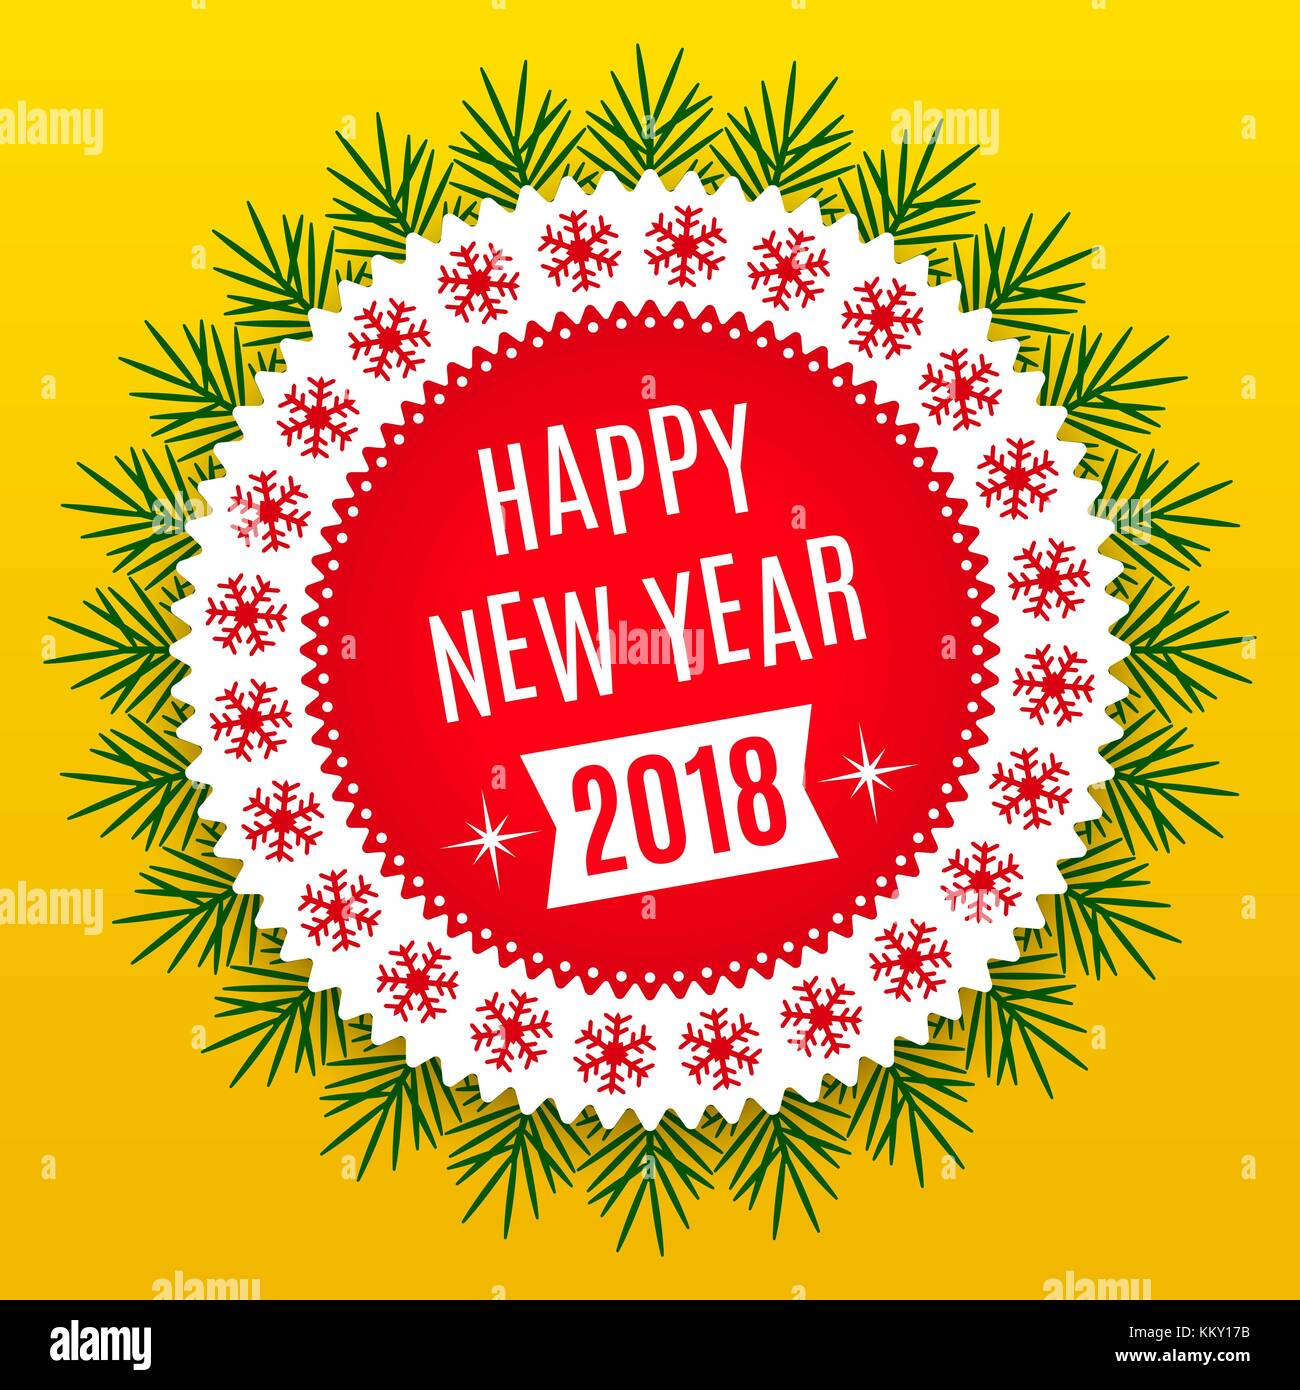 new year 2018 holiday round banner of happy new year 2018 in red white and yellow color vintage greeting badge with spruce branches